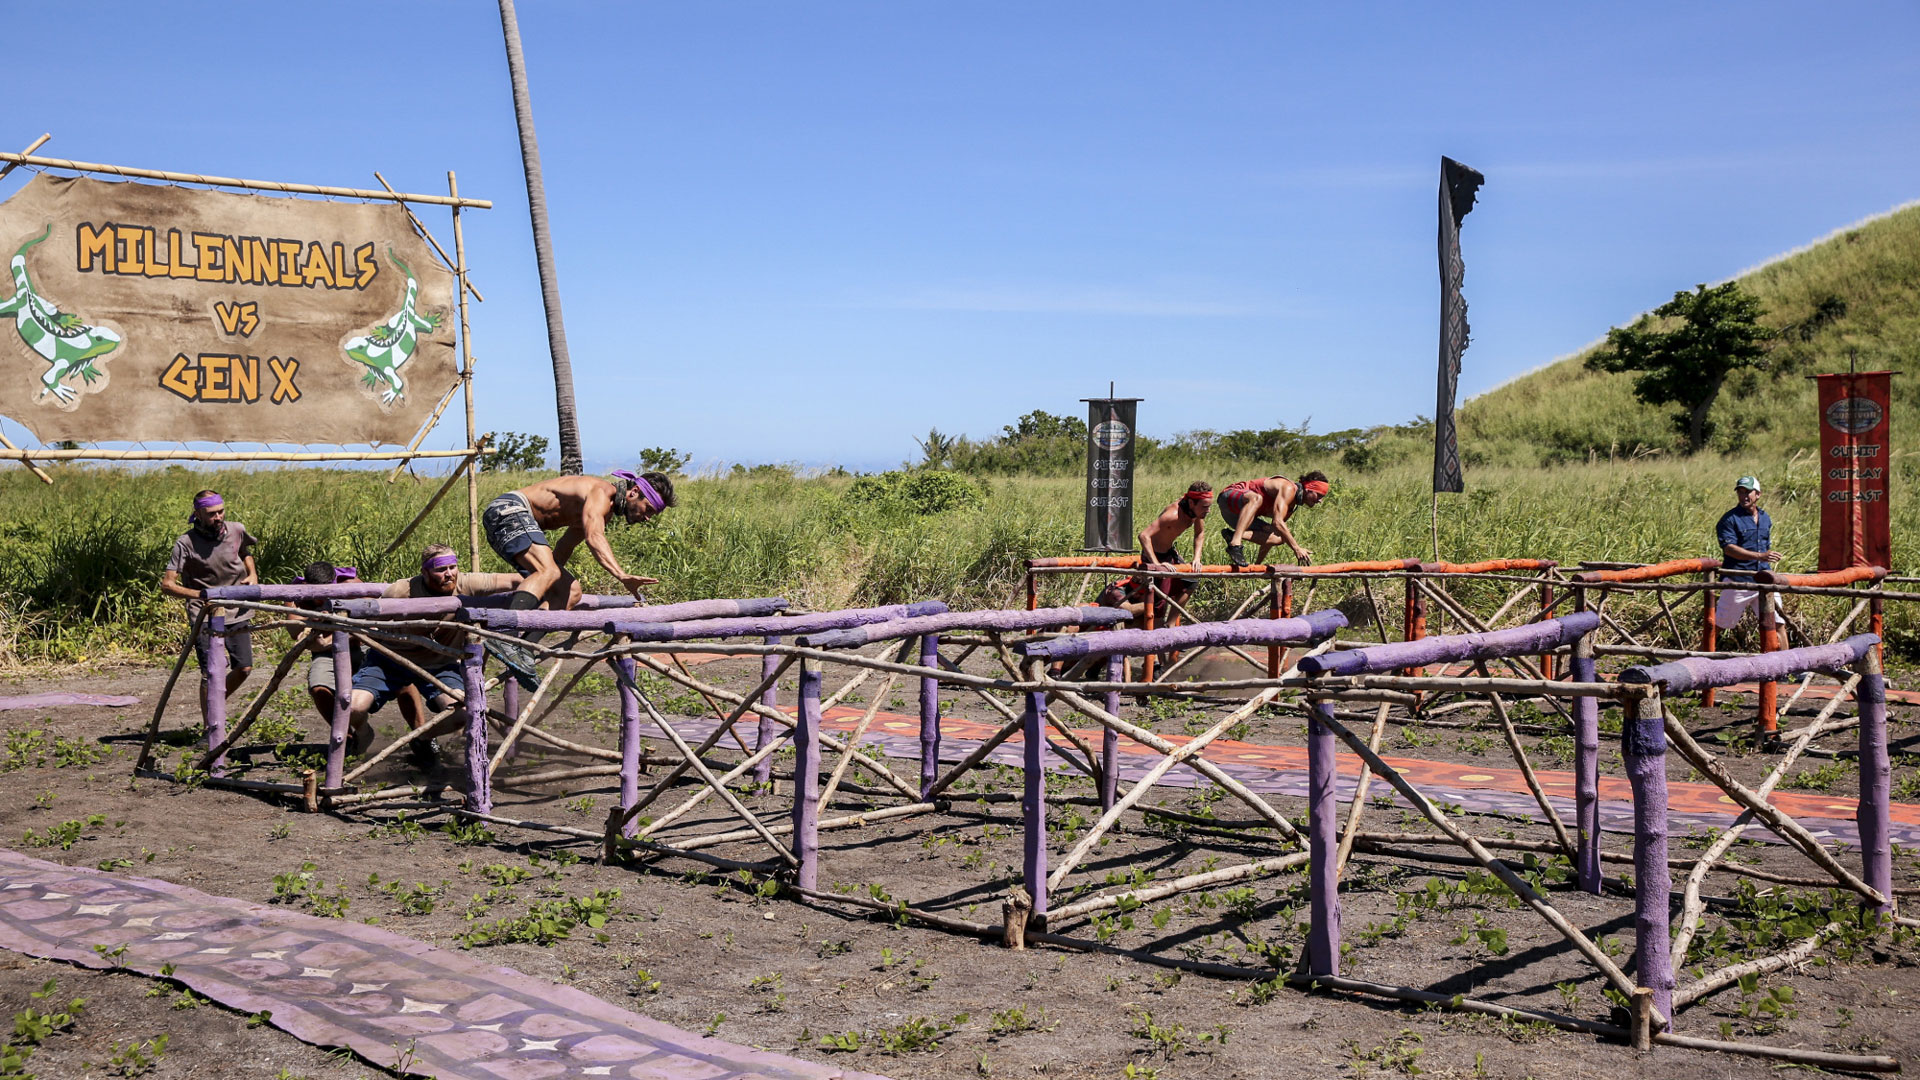 Members of two teams race through a series of obstacles.